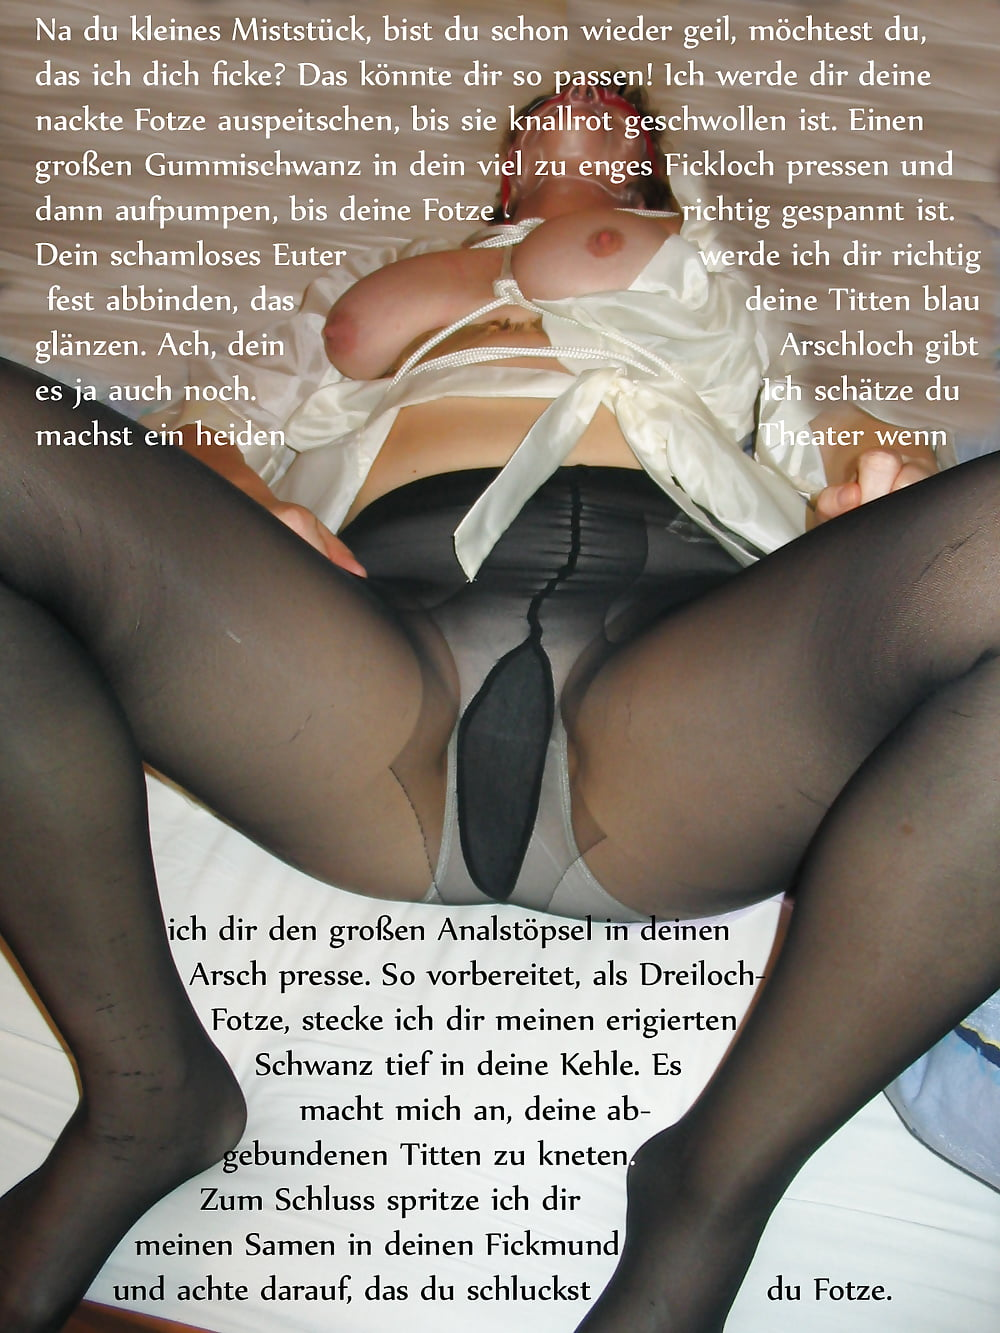 Pov kopfkino dirty talk von dominanter deutscher hausfrau - 2 part 9